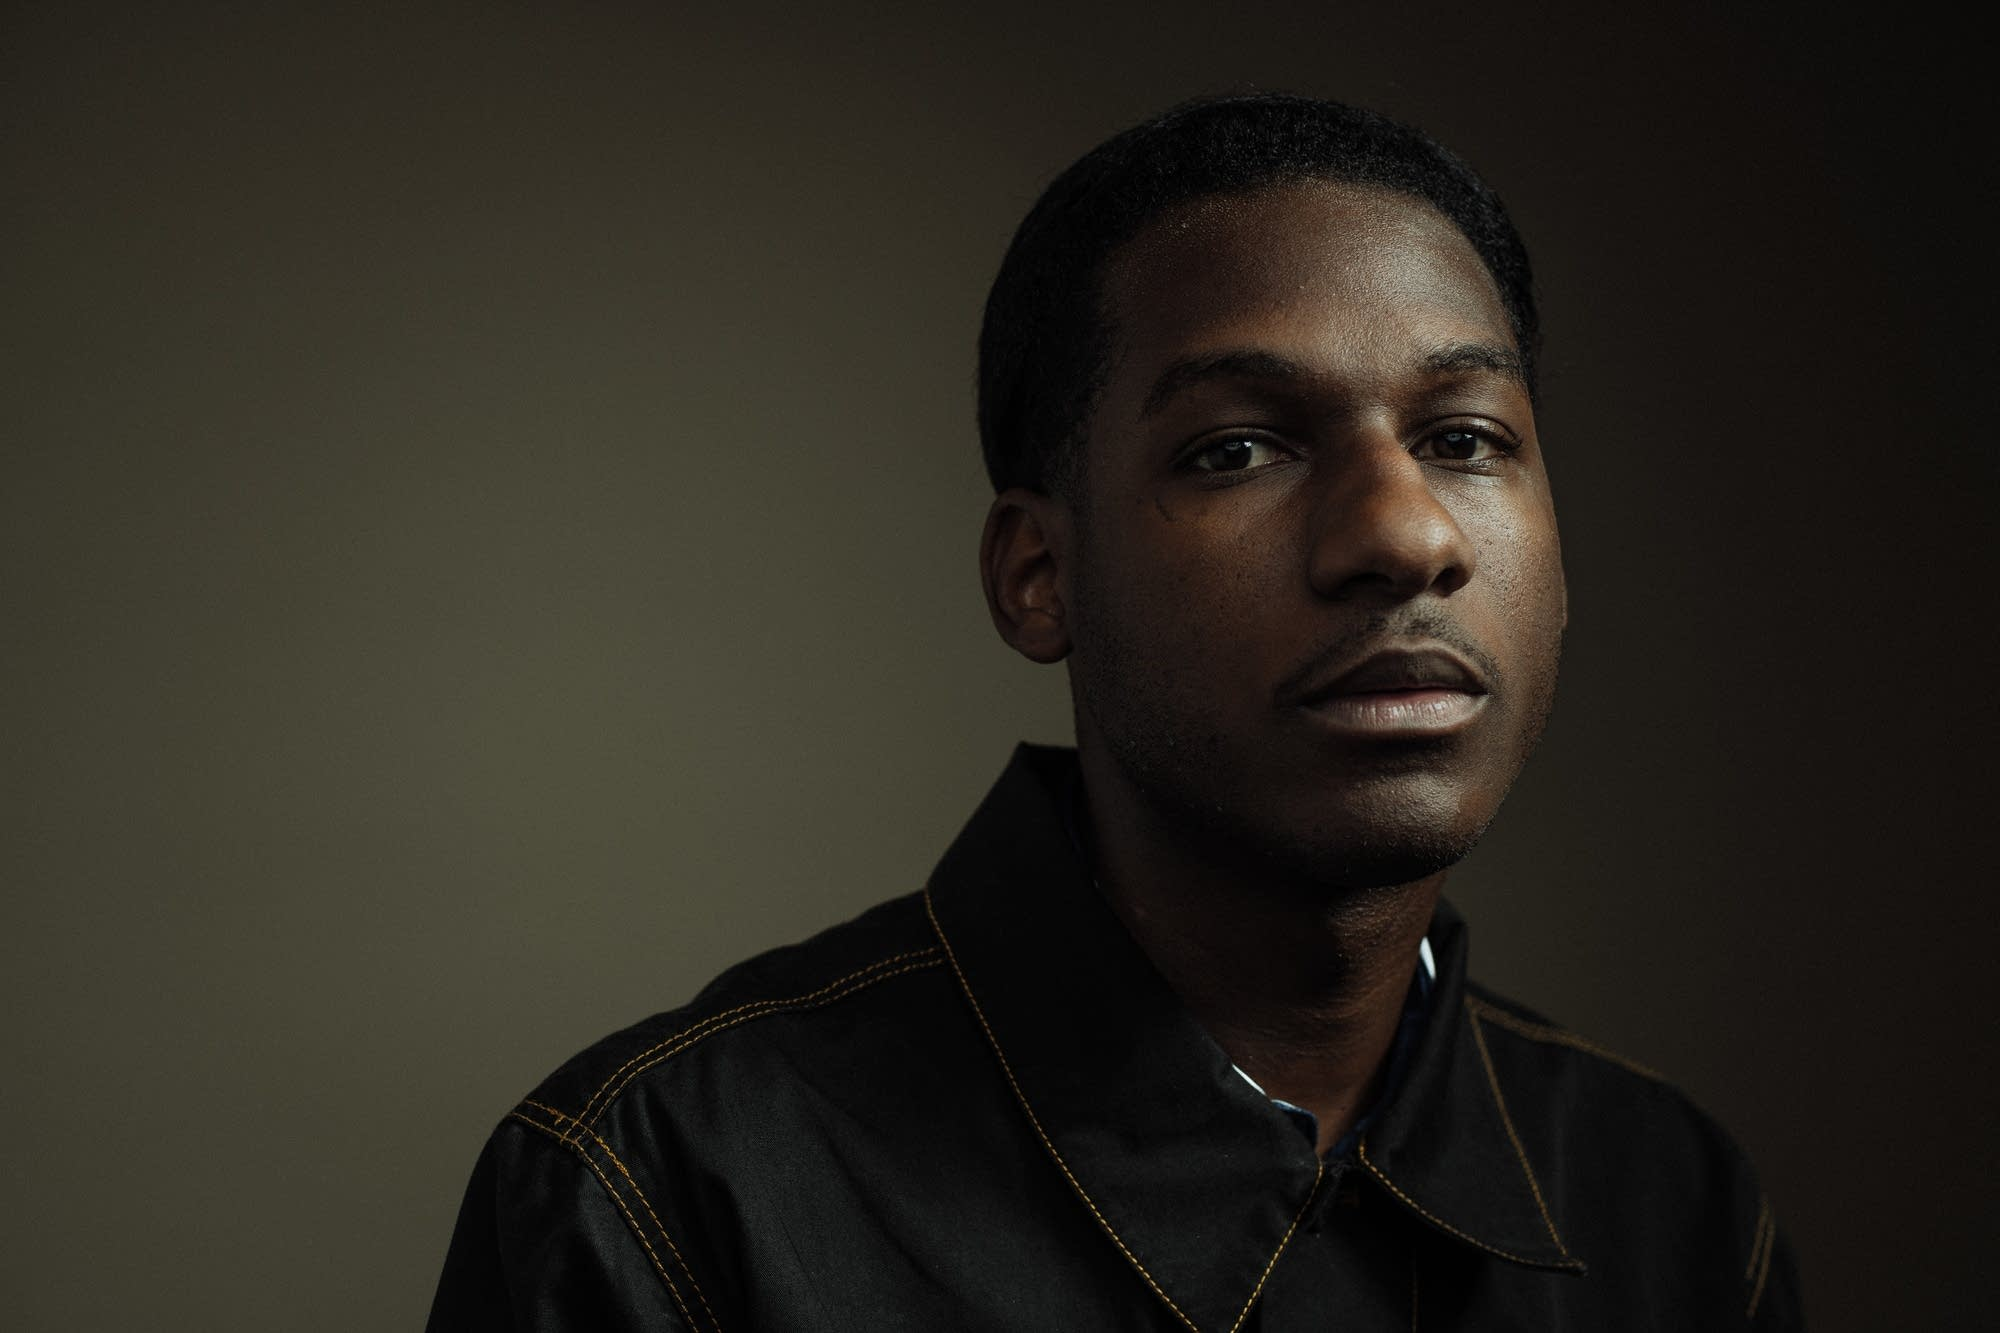 Leon Bridges: portraits at The Current